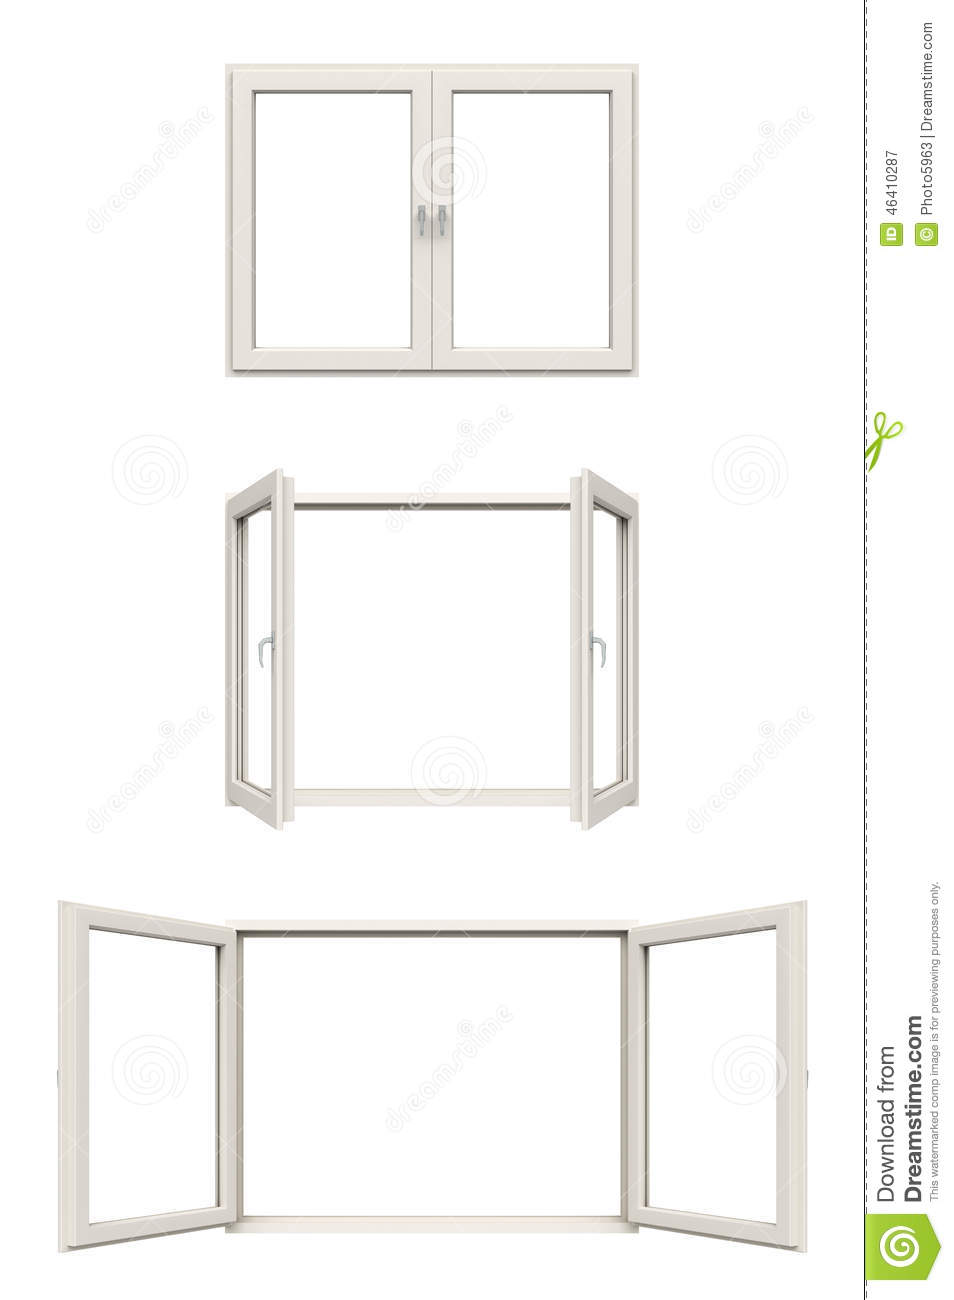 White window frame - White Window Frame